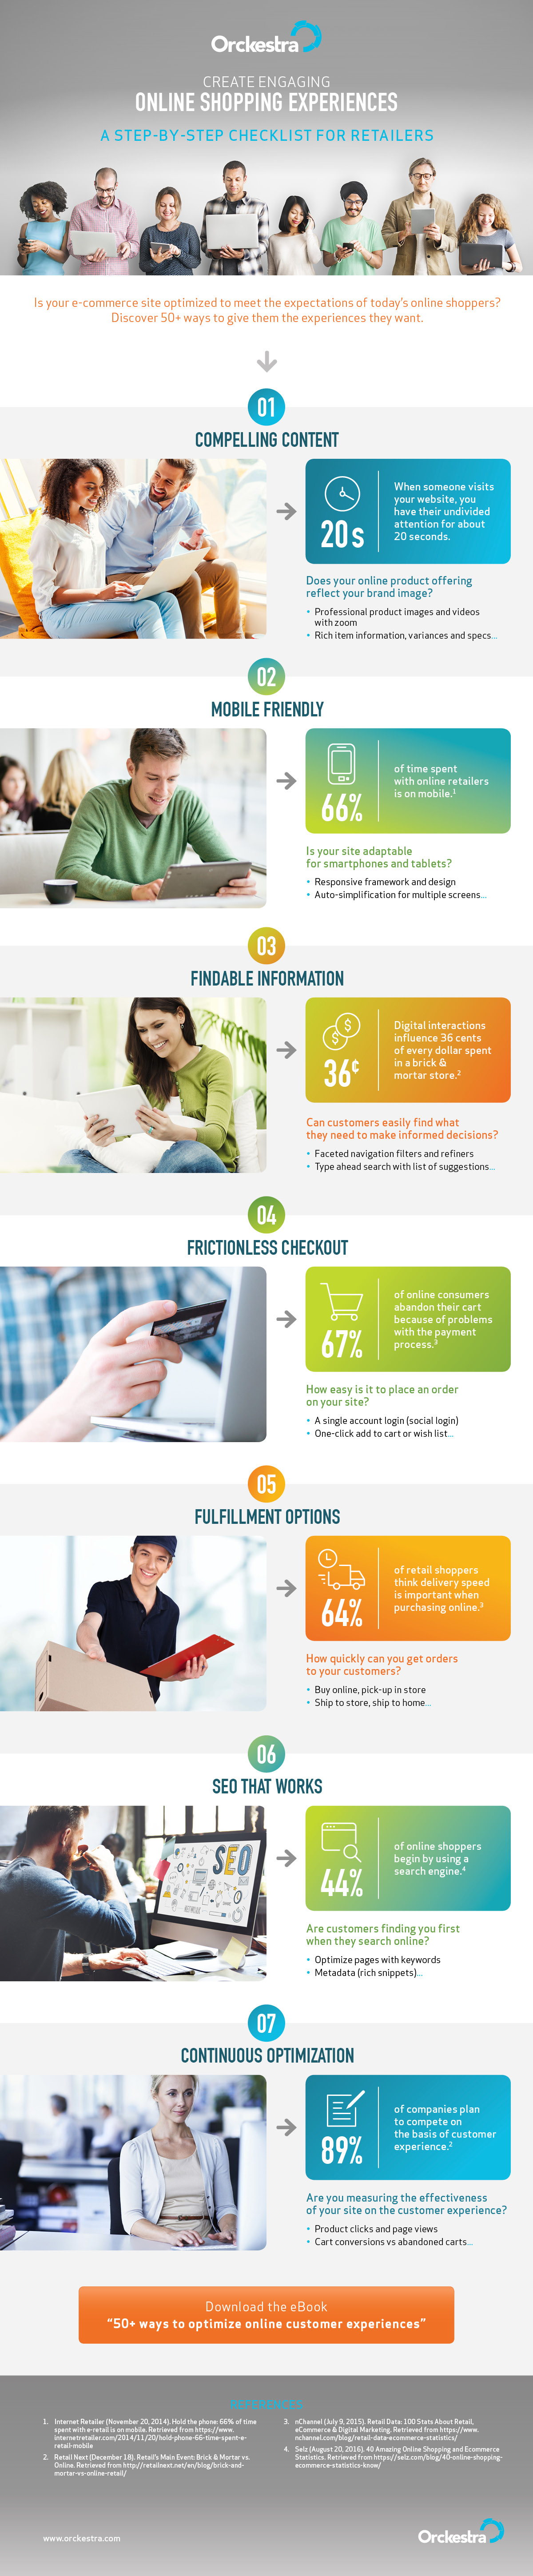 Ecommerce Infographic showing the ultimate checklist of what retailers need to create engaging online experiences!